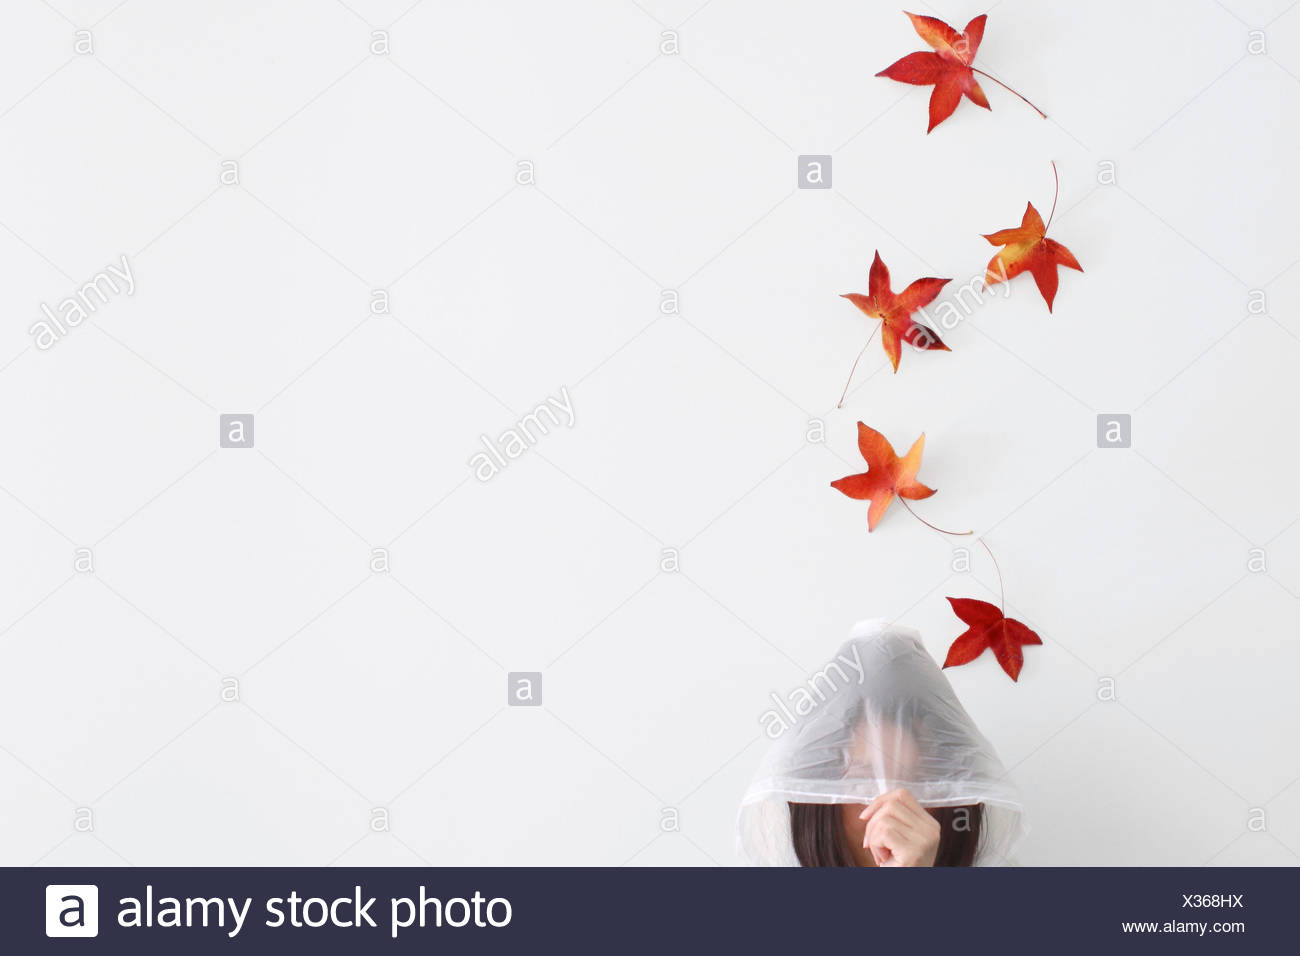 Autumn leaves falling on a woman wearing a raincoat - Stock Image